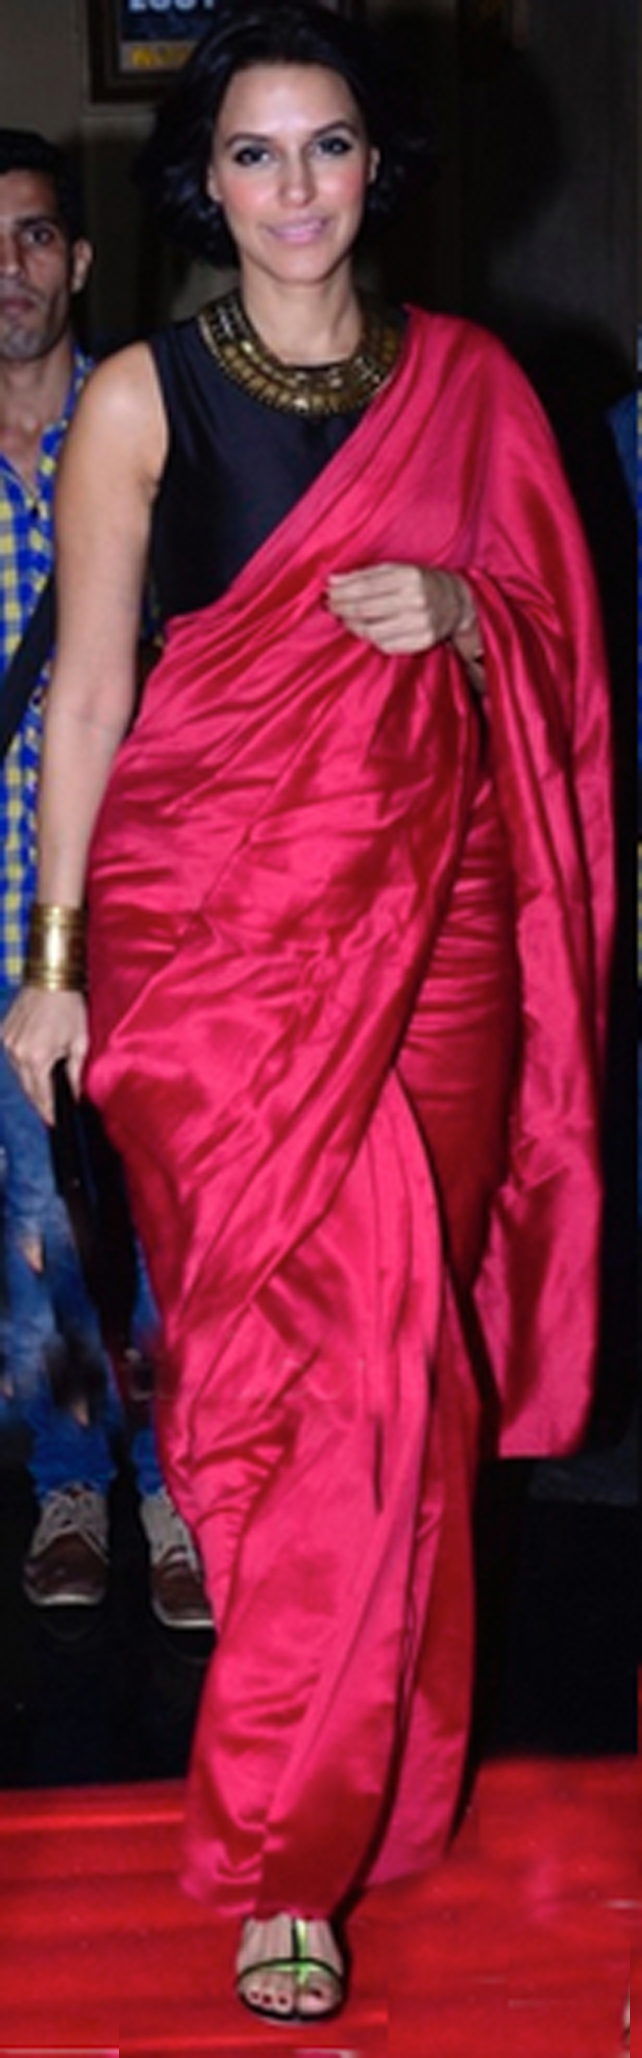 Neha Dhupia in a Payal Singhal saree, BCBG clutch and Jimmy Choo sandals.